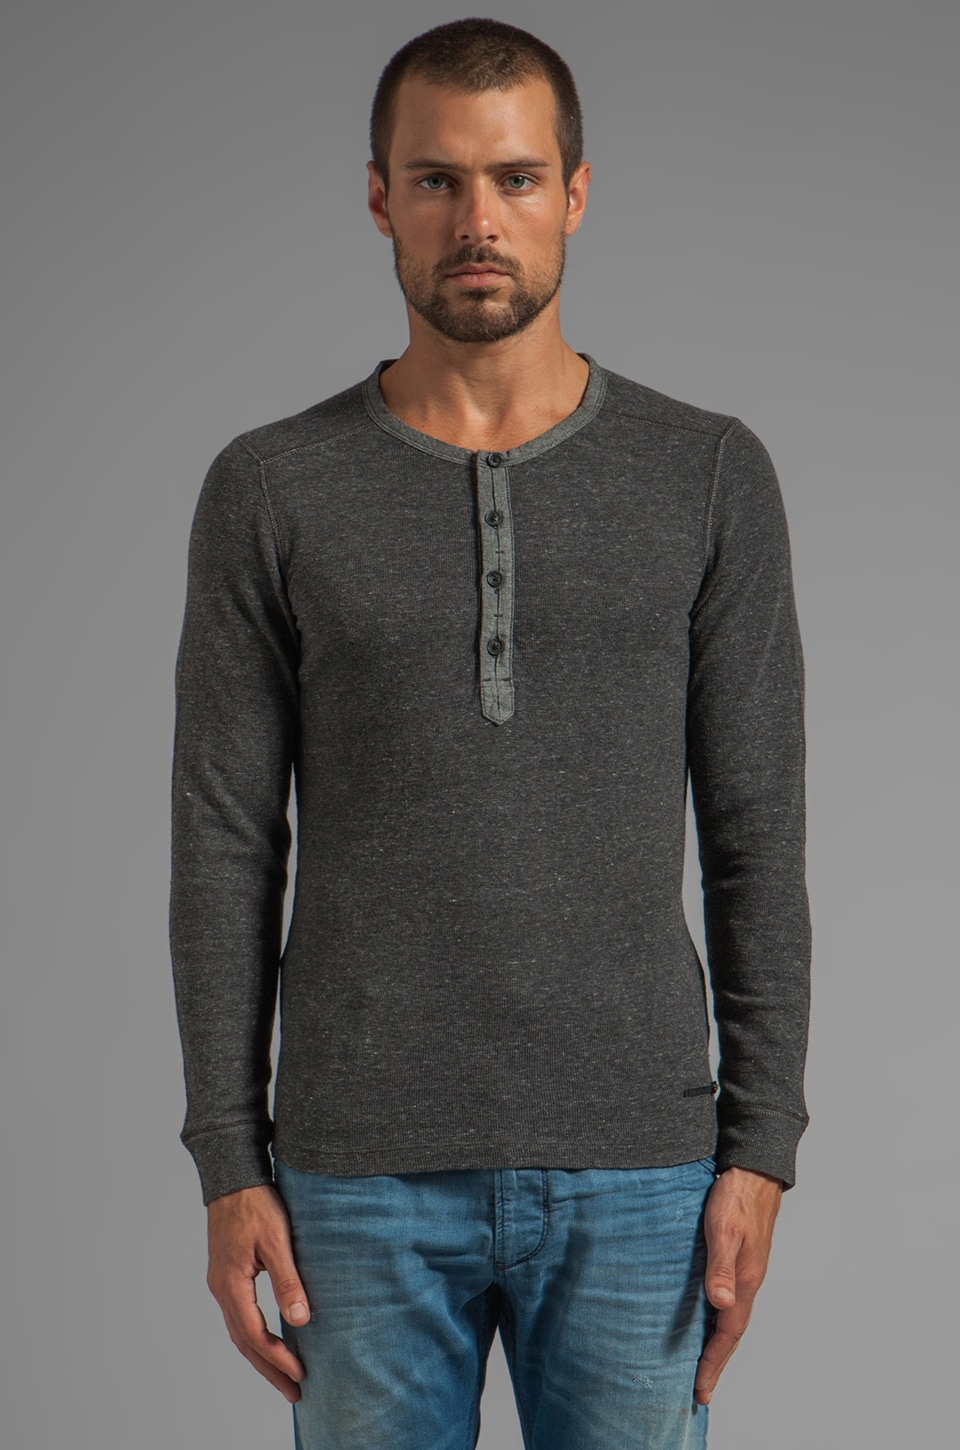 Diesel Yamato Long Sleeve in Smoke Grey